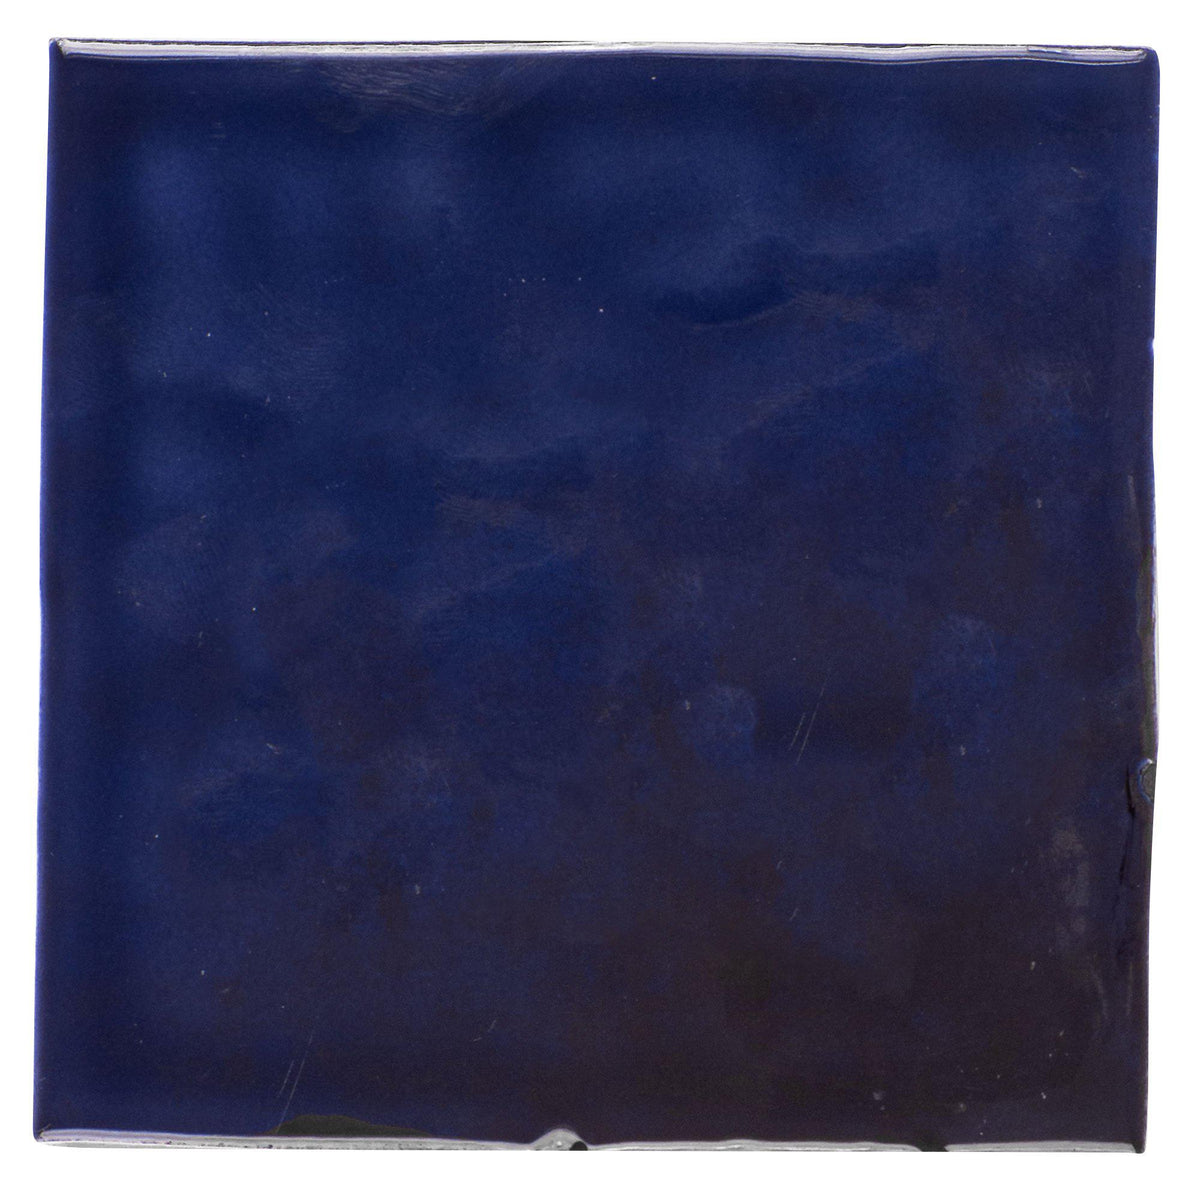 Mto0568 Modern 4x4 Navy Blue Distressed Glossy Ceramic Tile